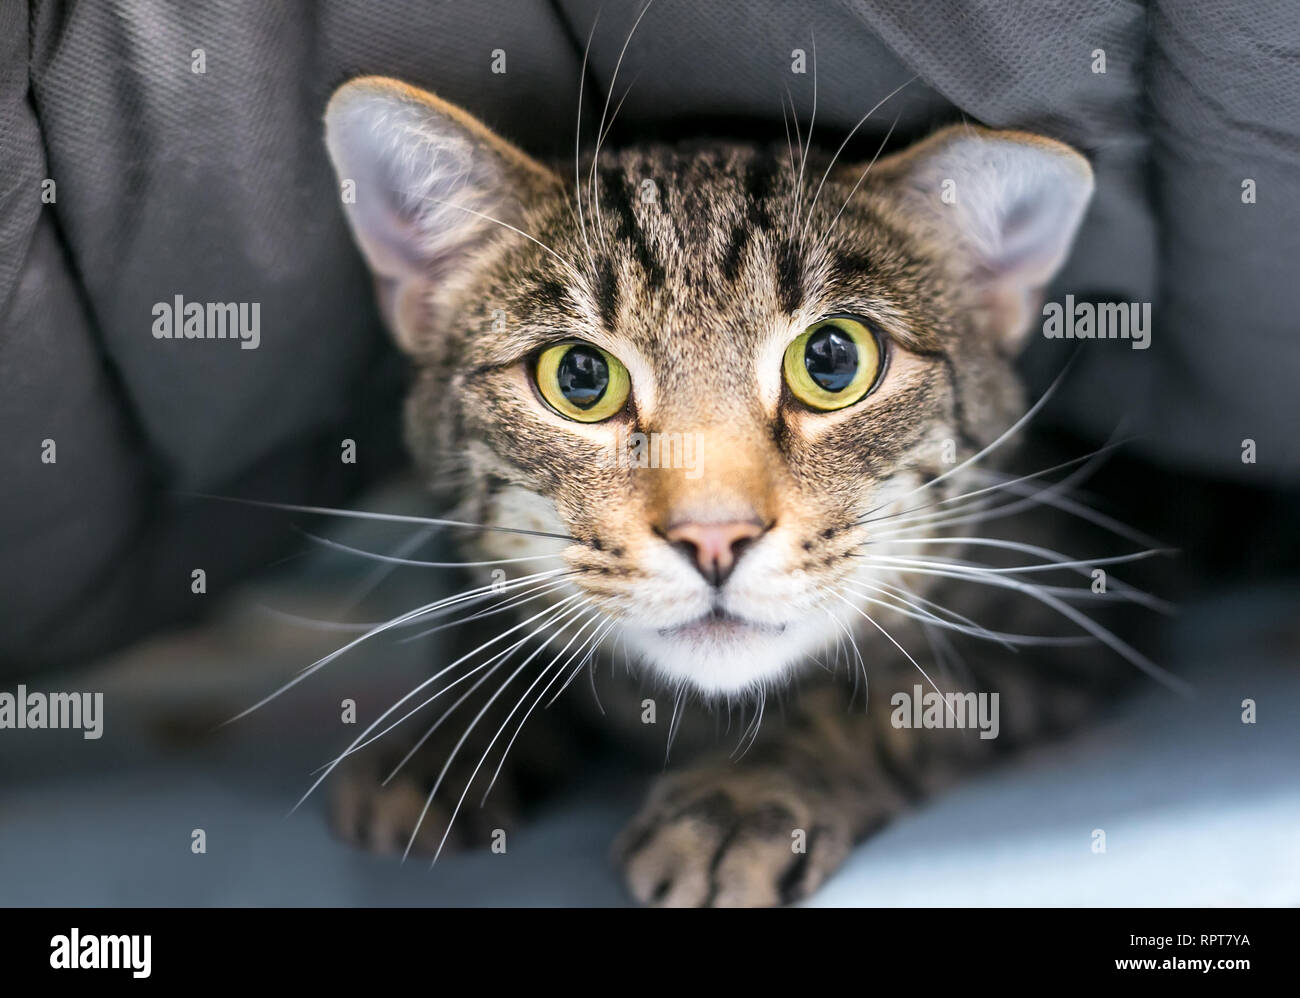 Une timide chat tabby shorthair domestique se cachant sous une couverture Photo Stock